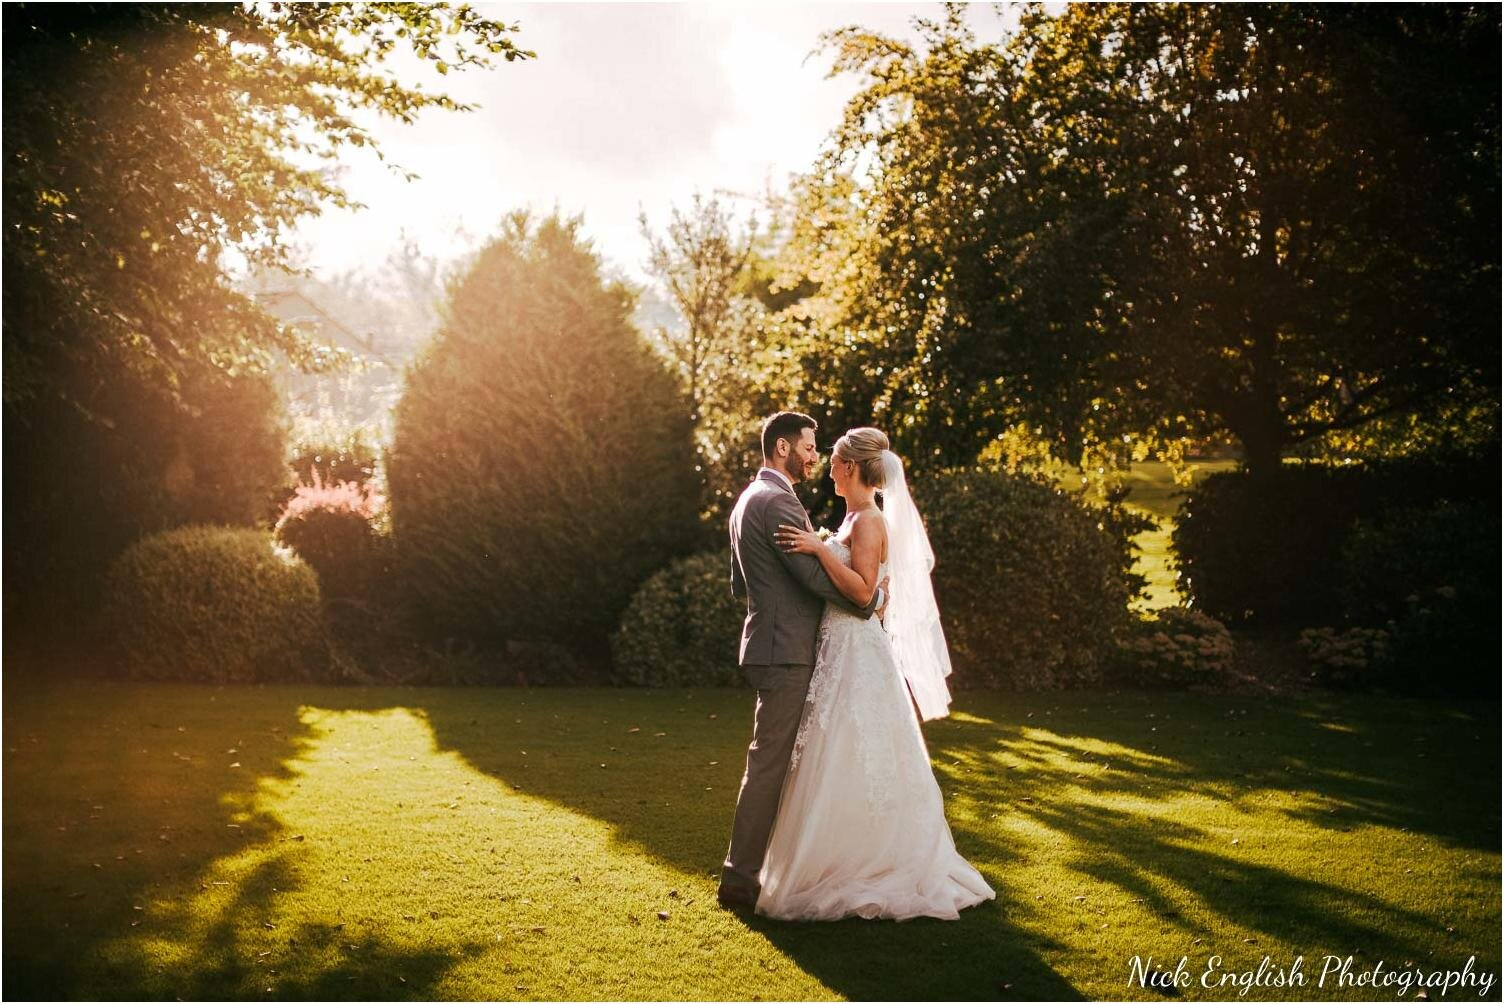 Falcon_Manor_Yorkshire_Wedding_Photographer-102.jpg